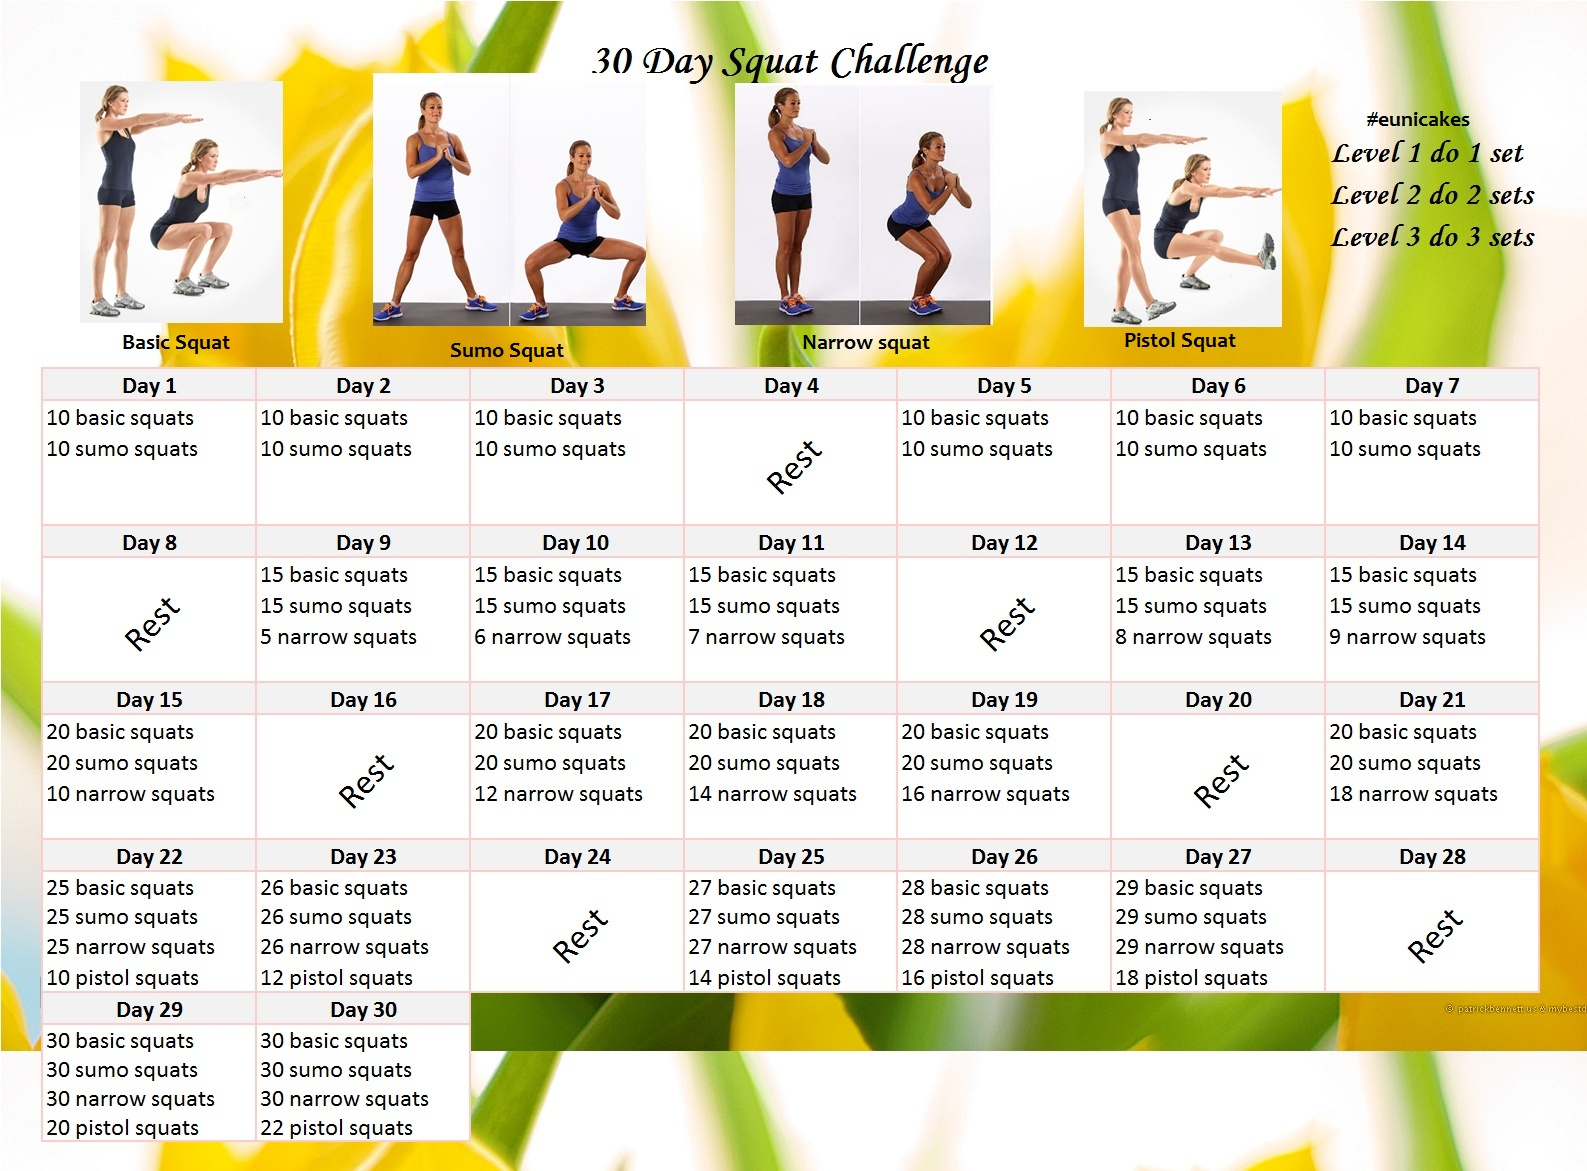 Fitness Challenge: 30 Day Squat Calendar Challenge | Eunicakes With 30 Day Squat Challenge Schedule Calendar